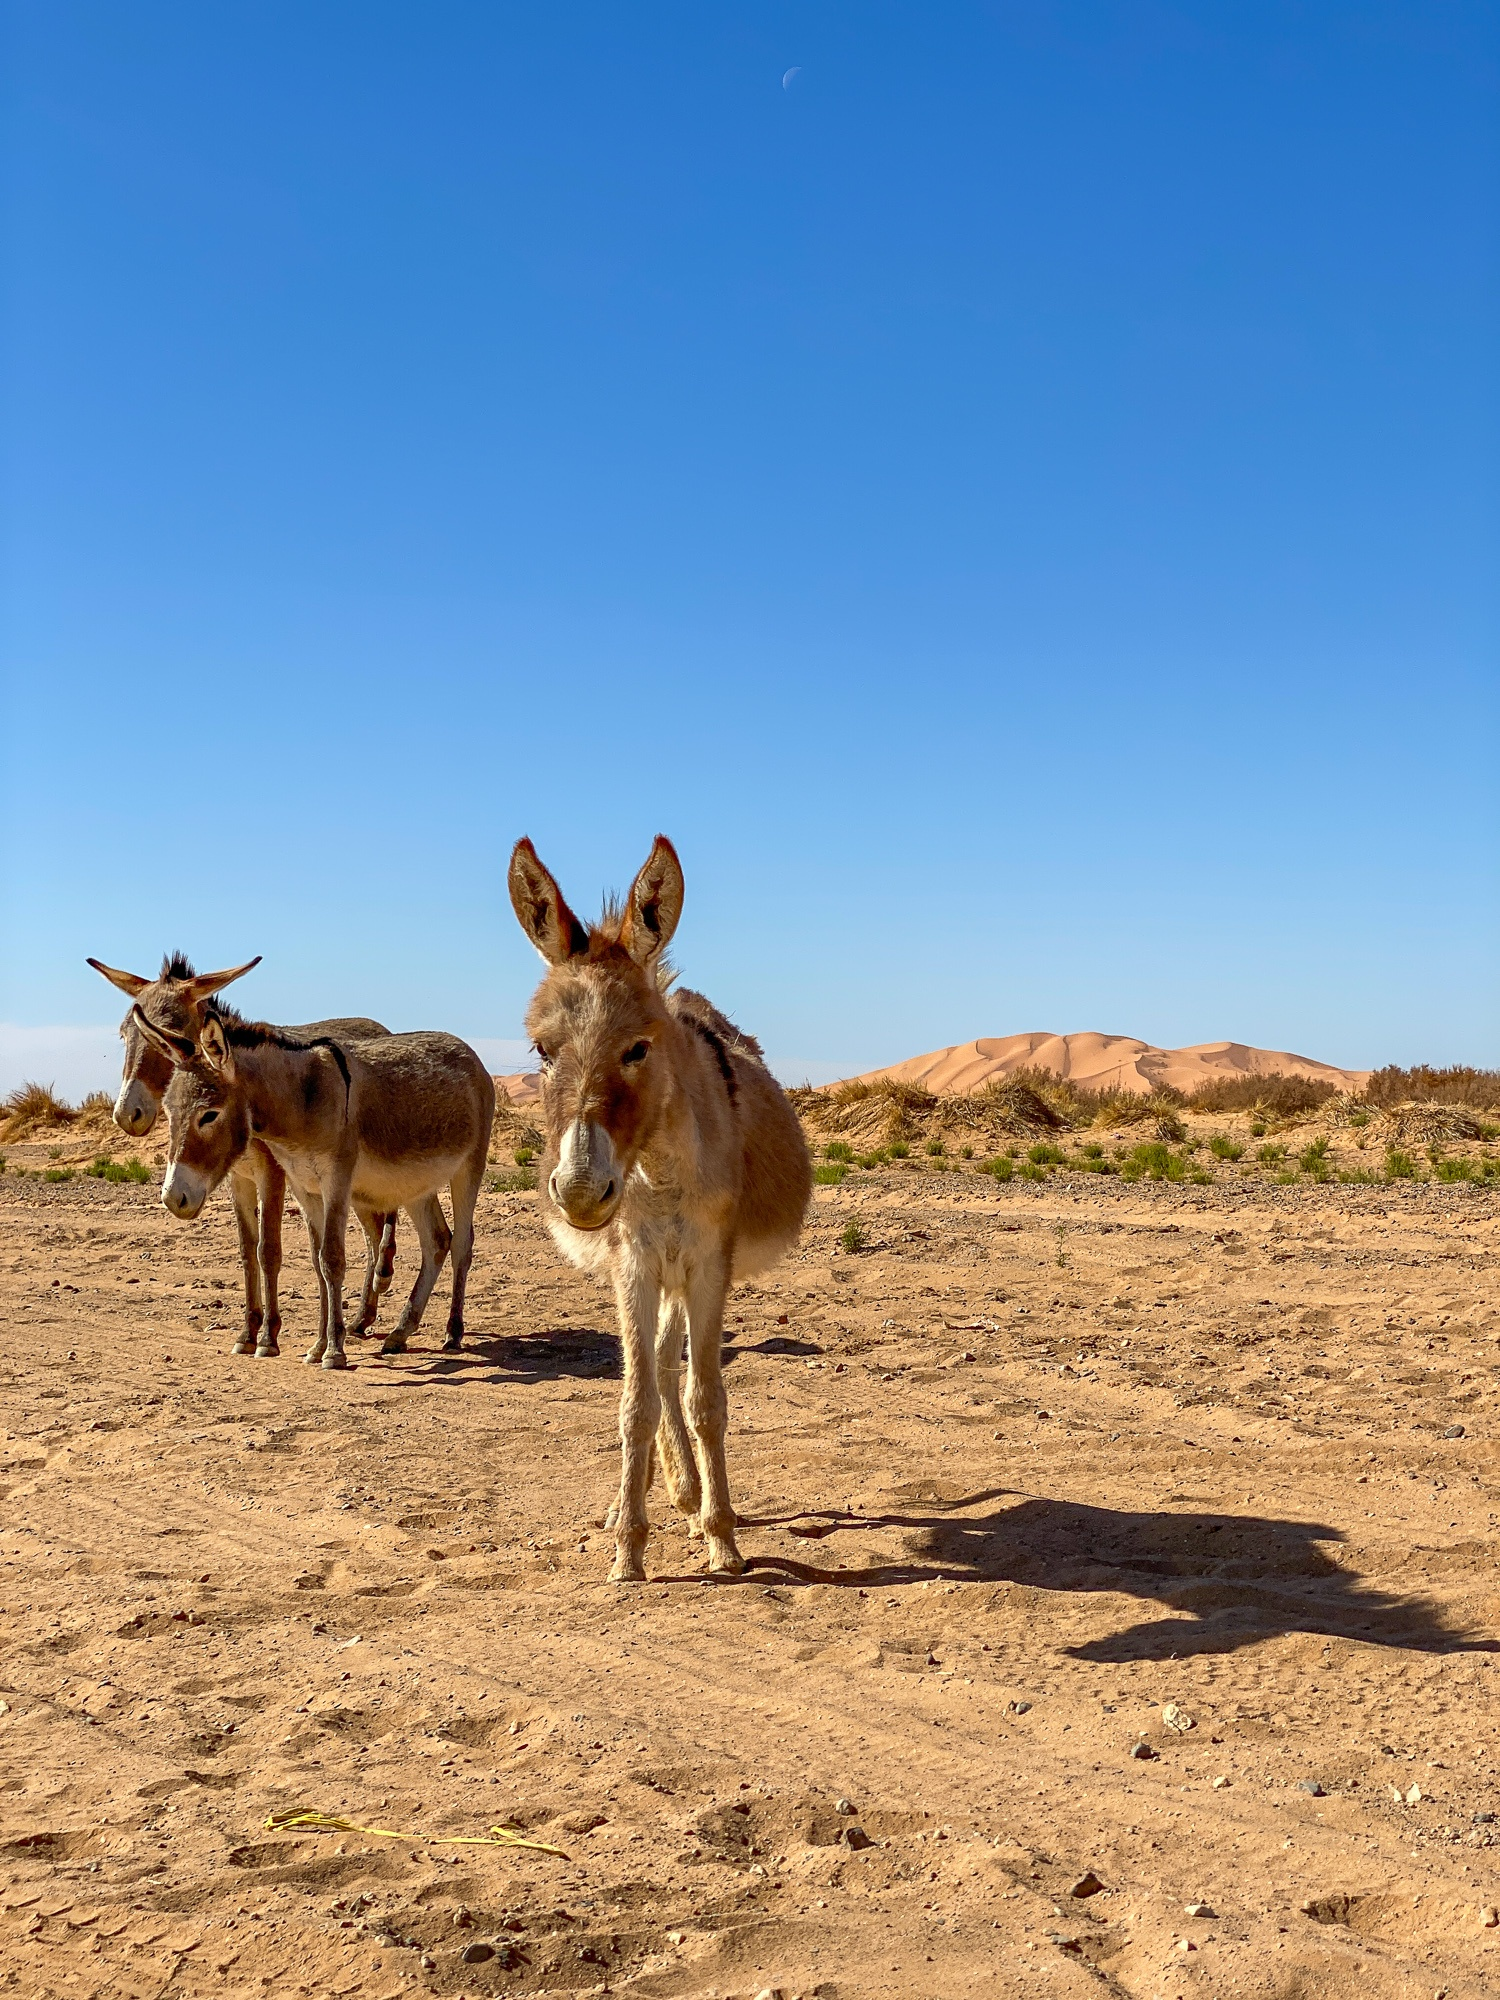 Donkeys in the Sahara Desert in Morocco